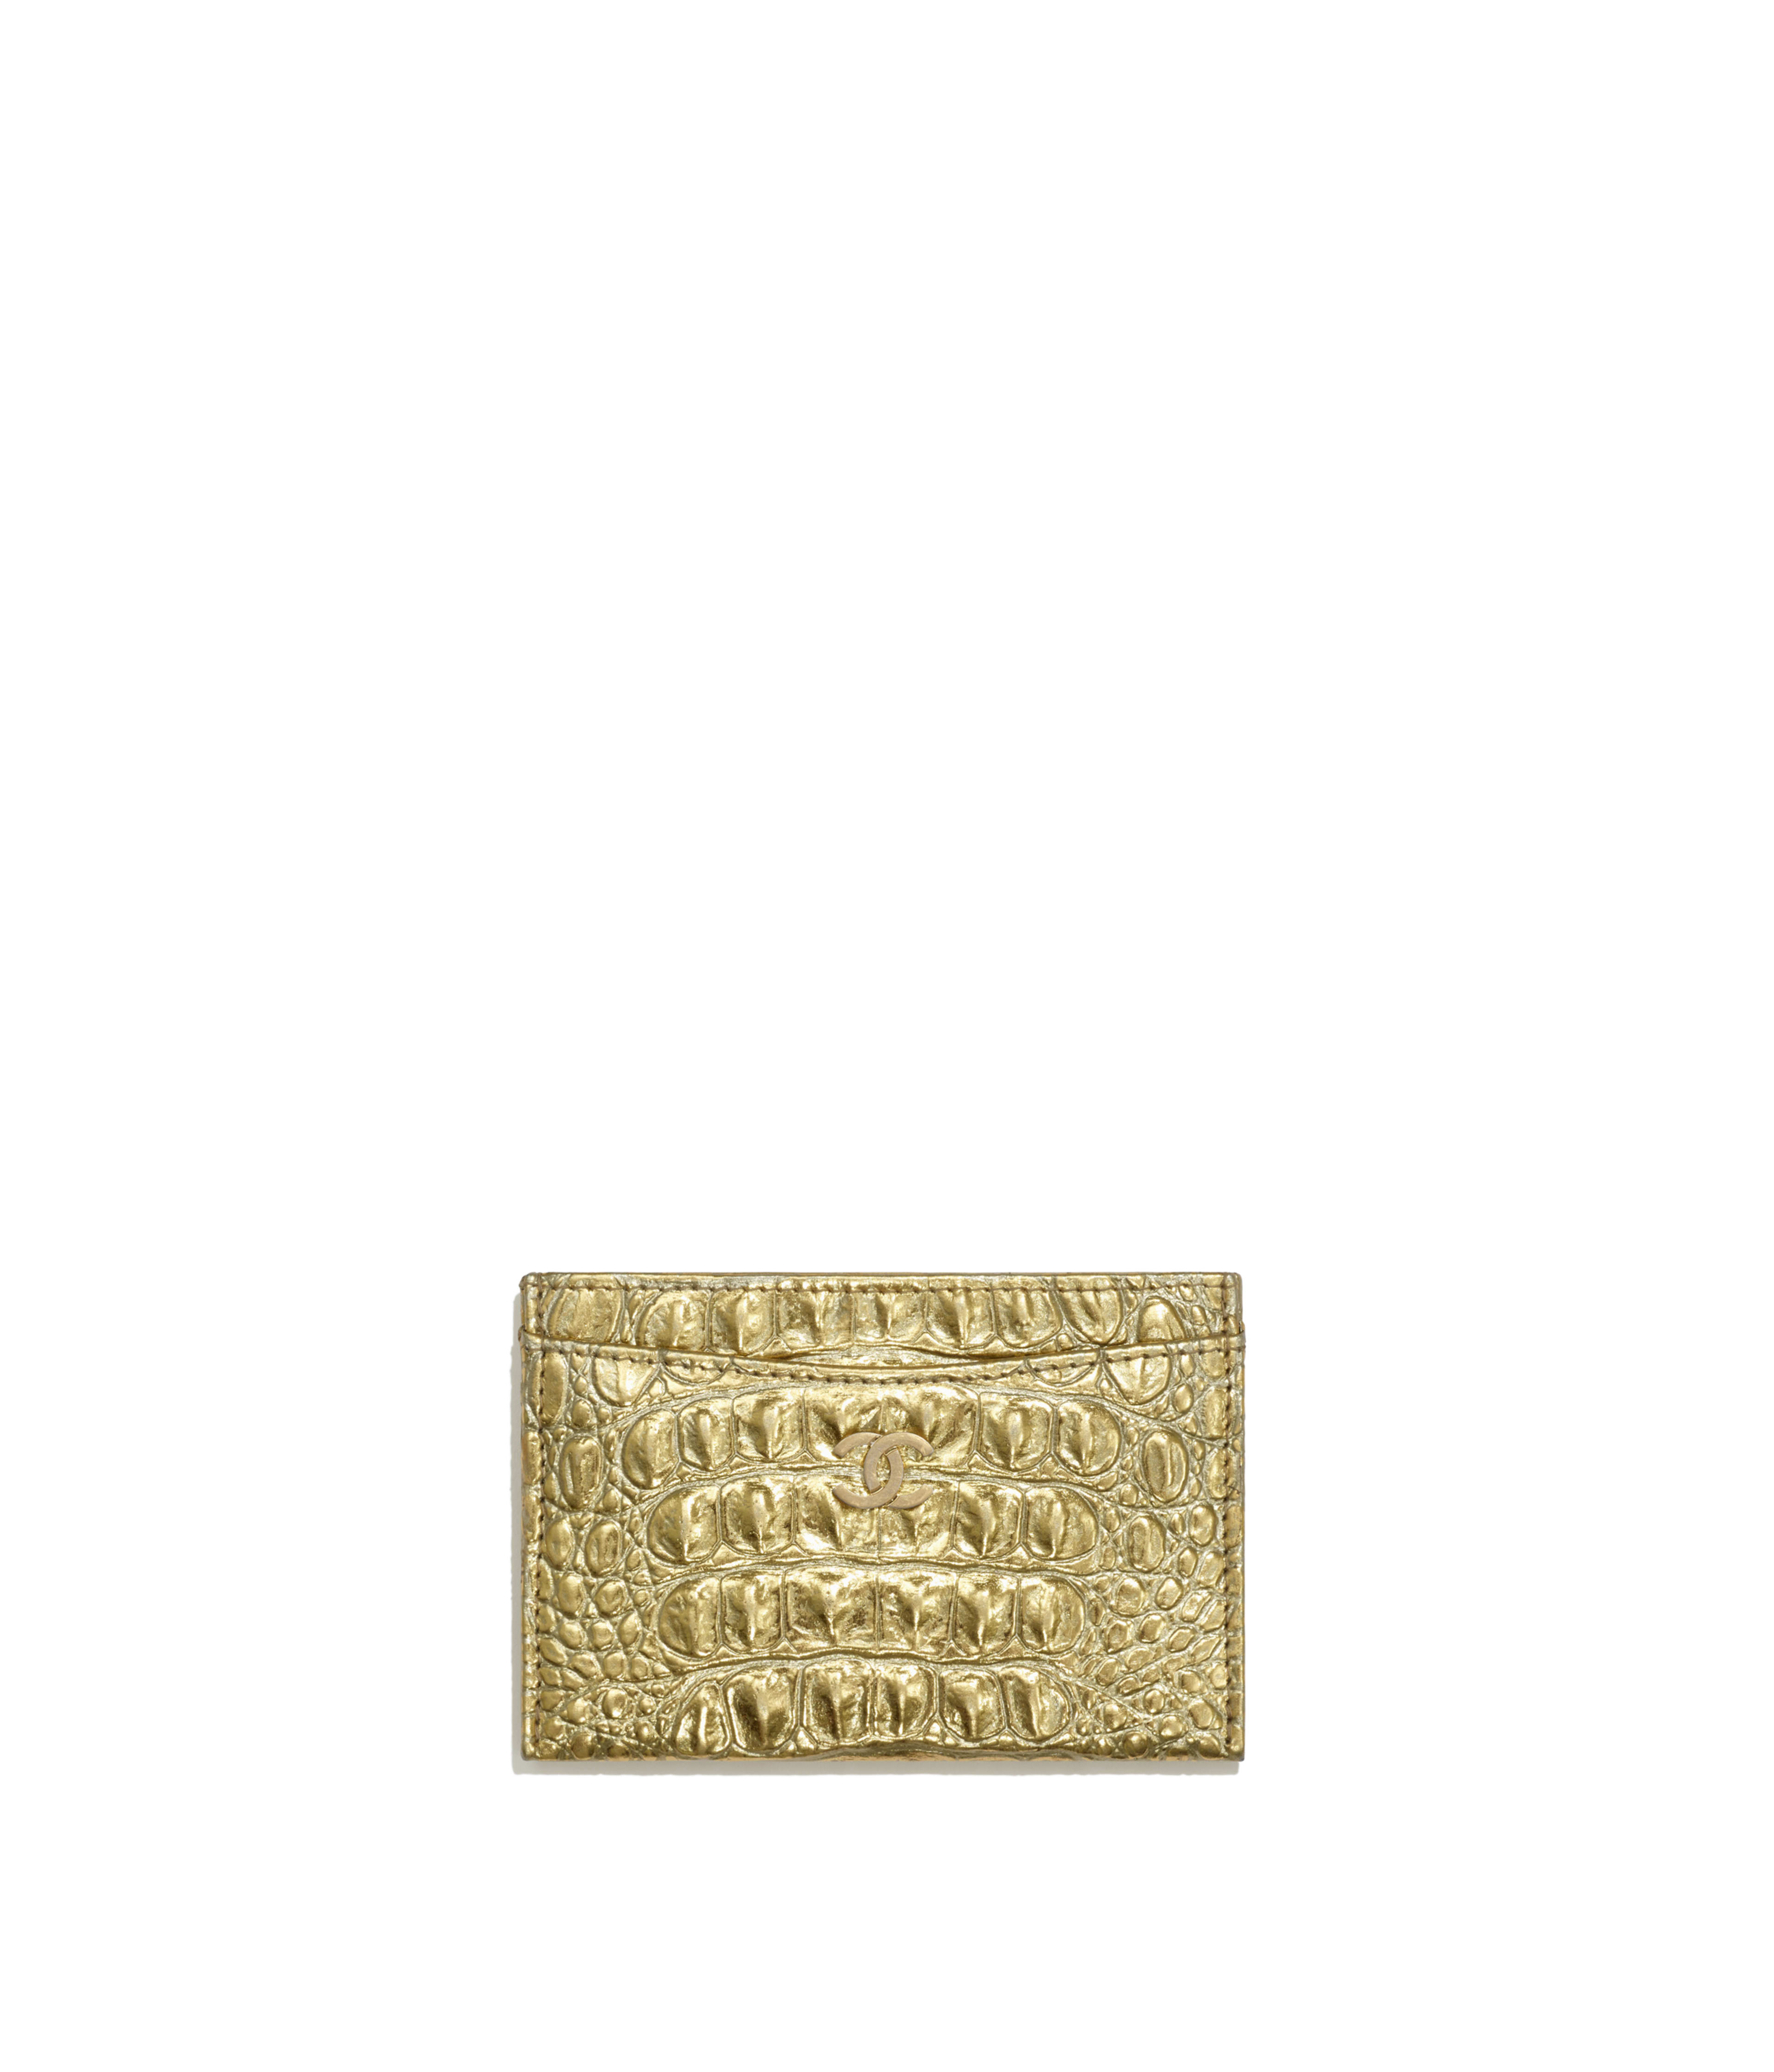 e4ea68850662 Classic Card Holder Metallic Crocodile Embossed Calfskin & Gold Metal, Gold  Ref. A31510B00798N4752